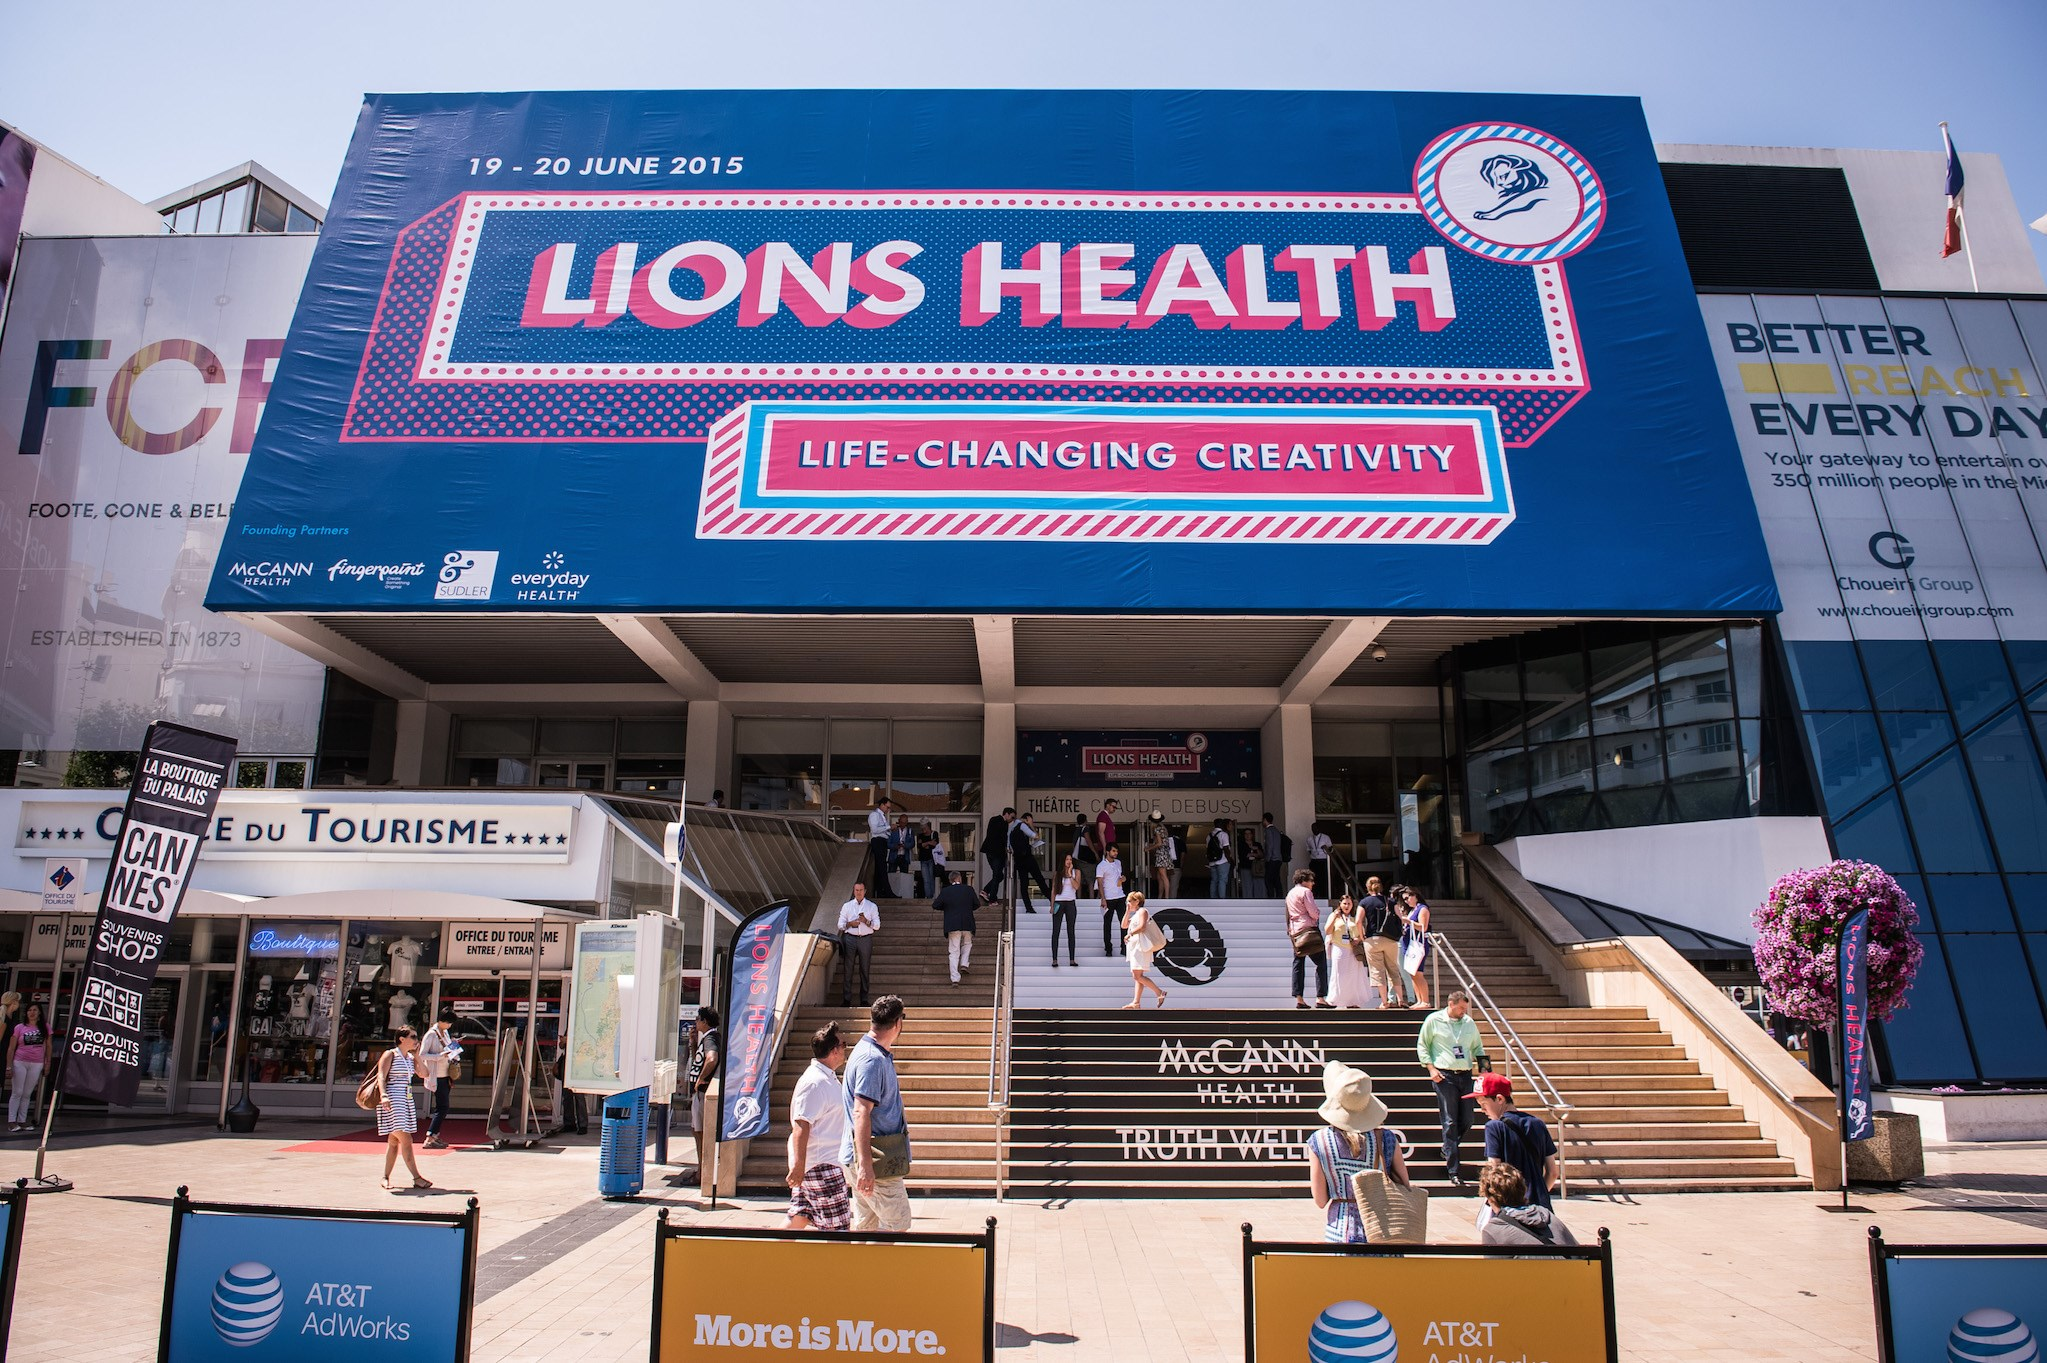 The Cannes Lions Health creativity festival came to a close this weekend.